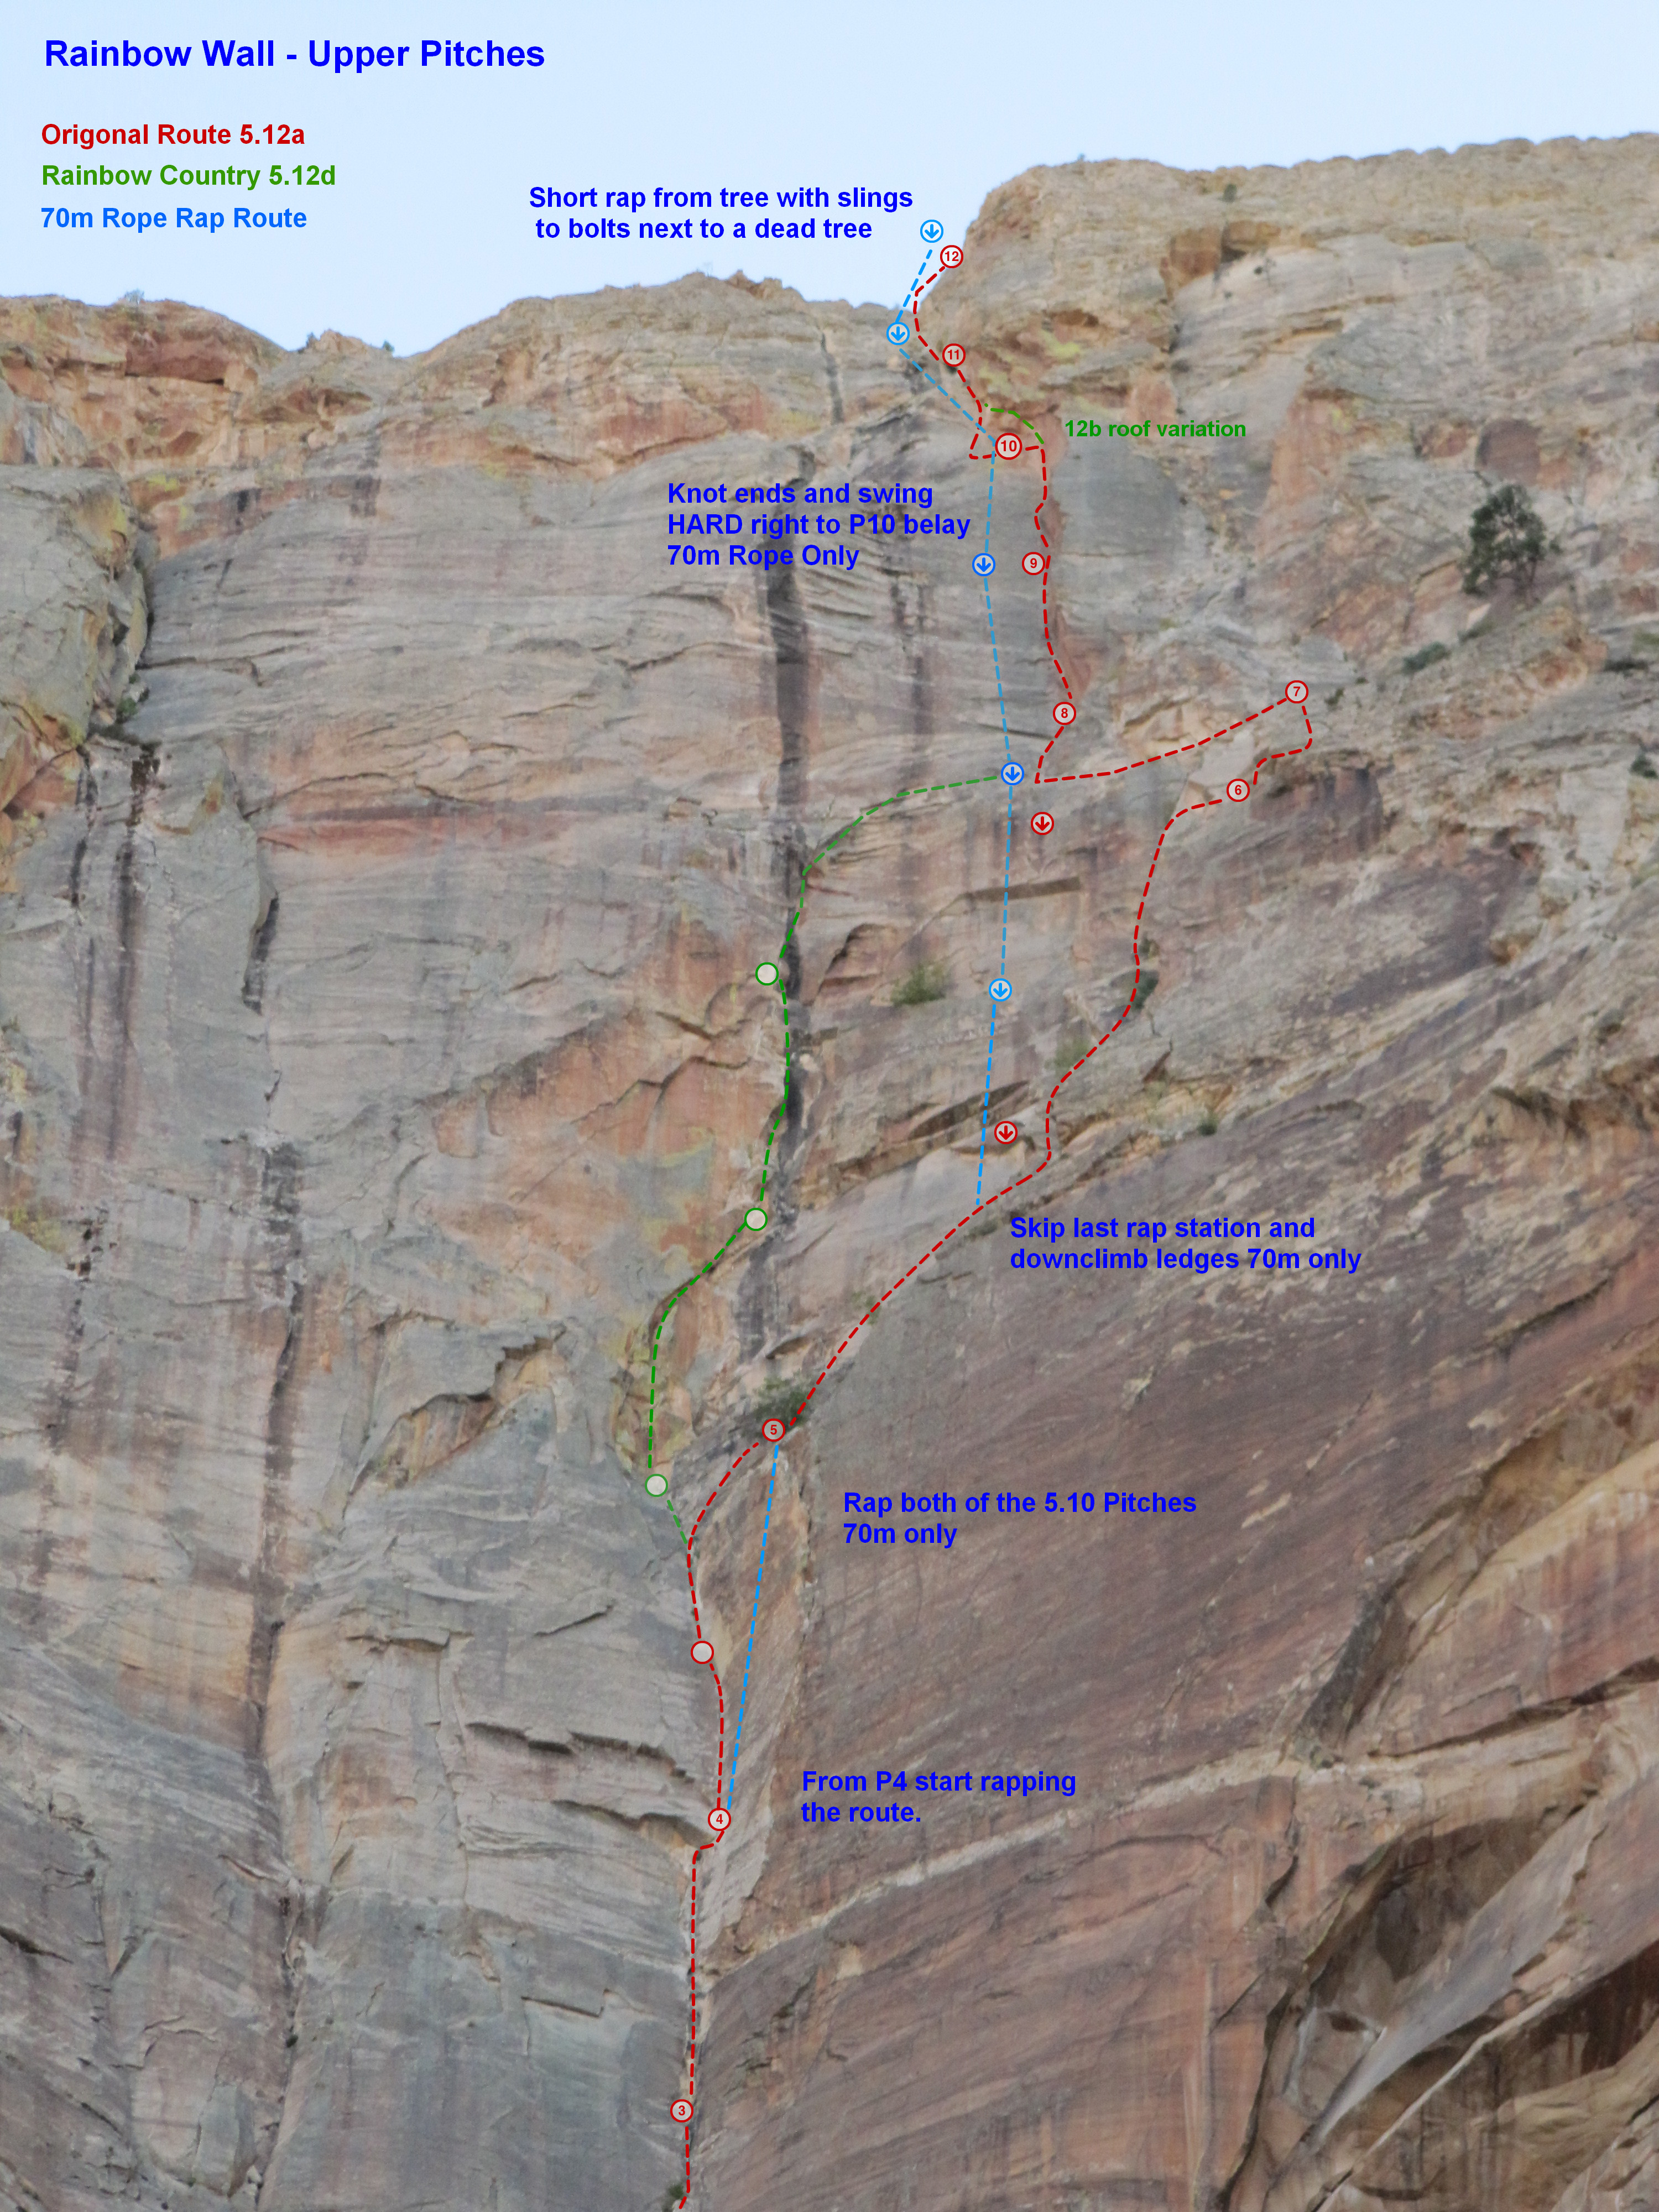 Rainbow Wall - Upper Pitches